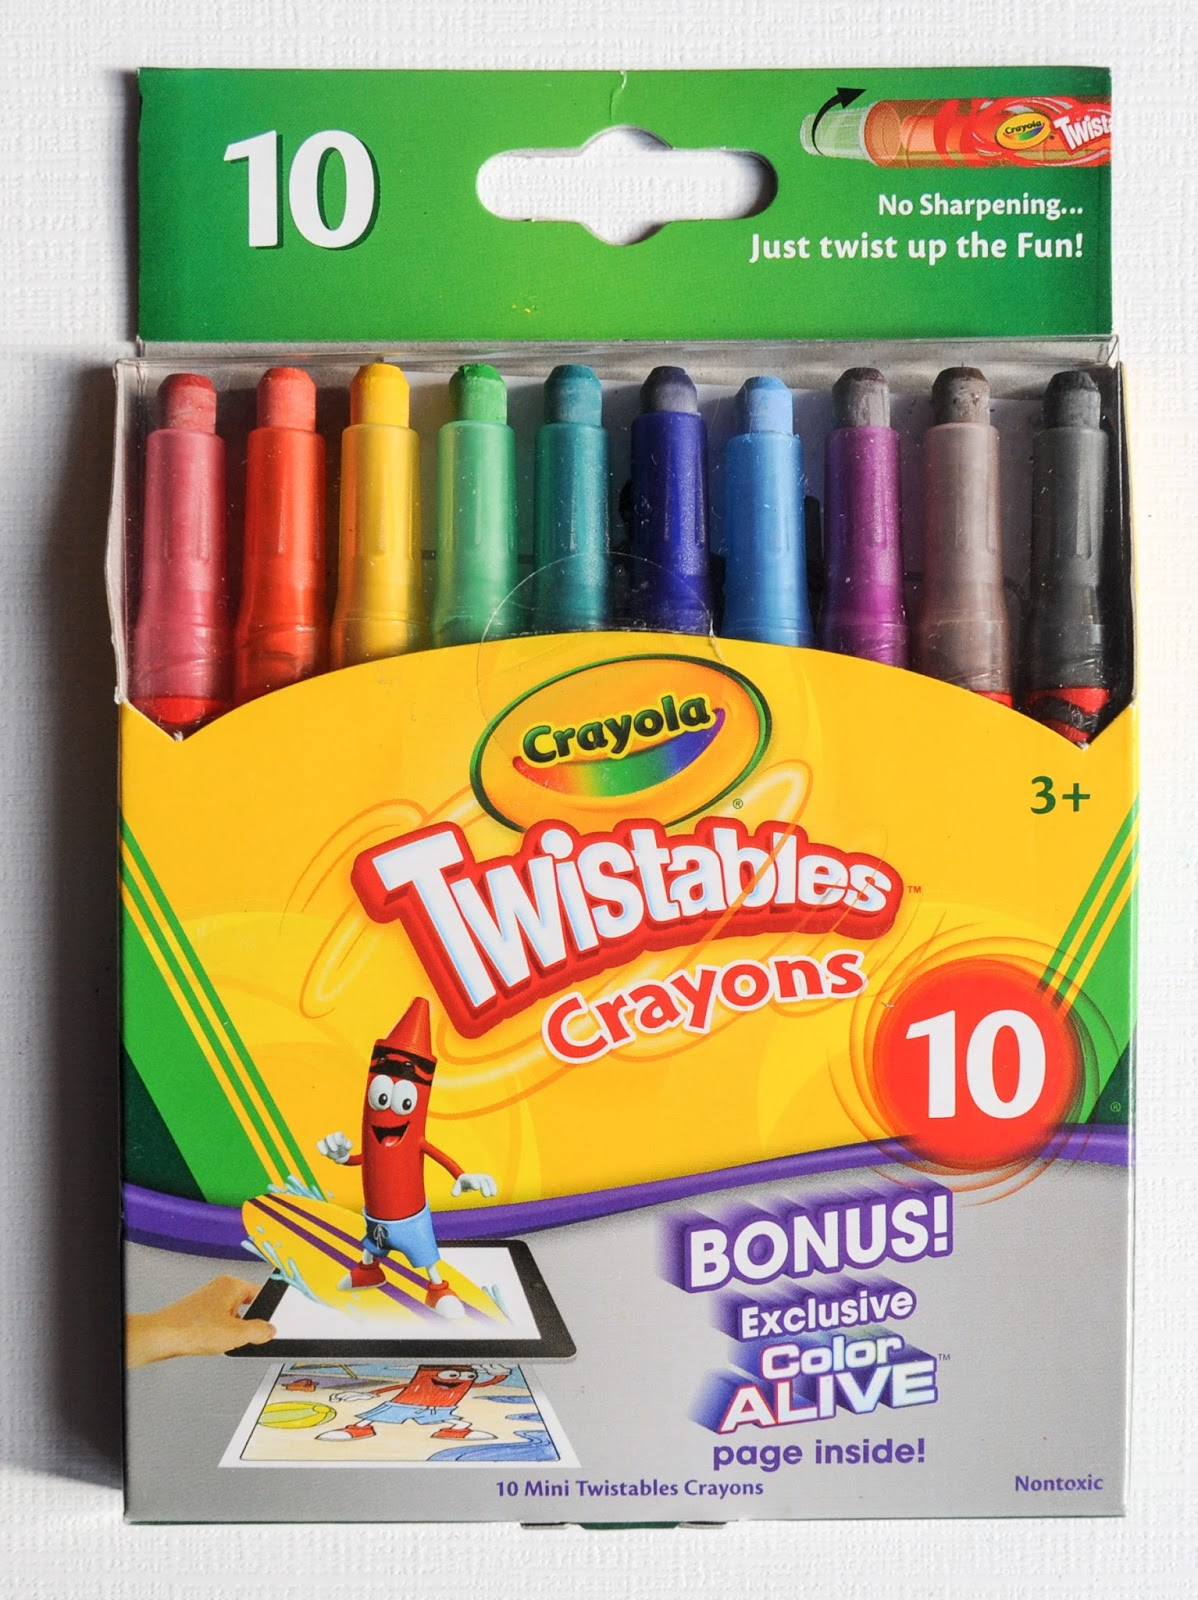 10 Count Crayola Twistables Crayons What S Inside The Box